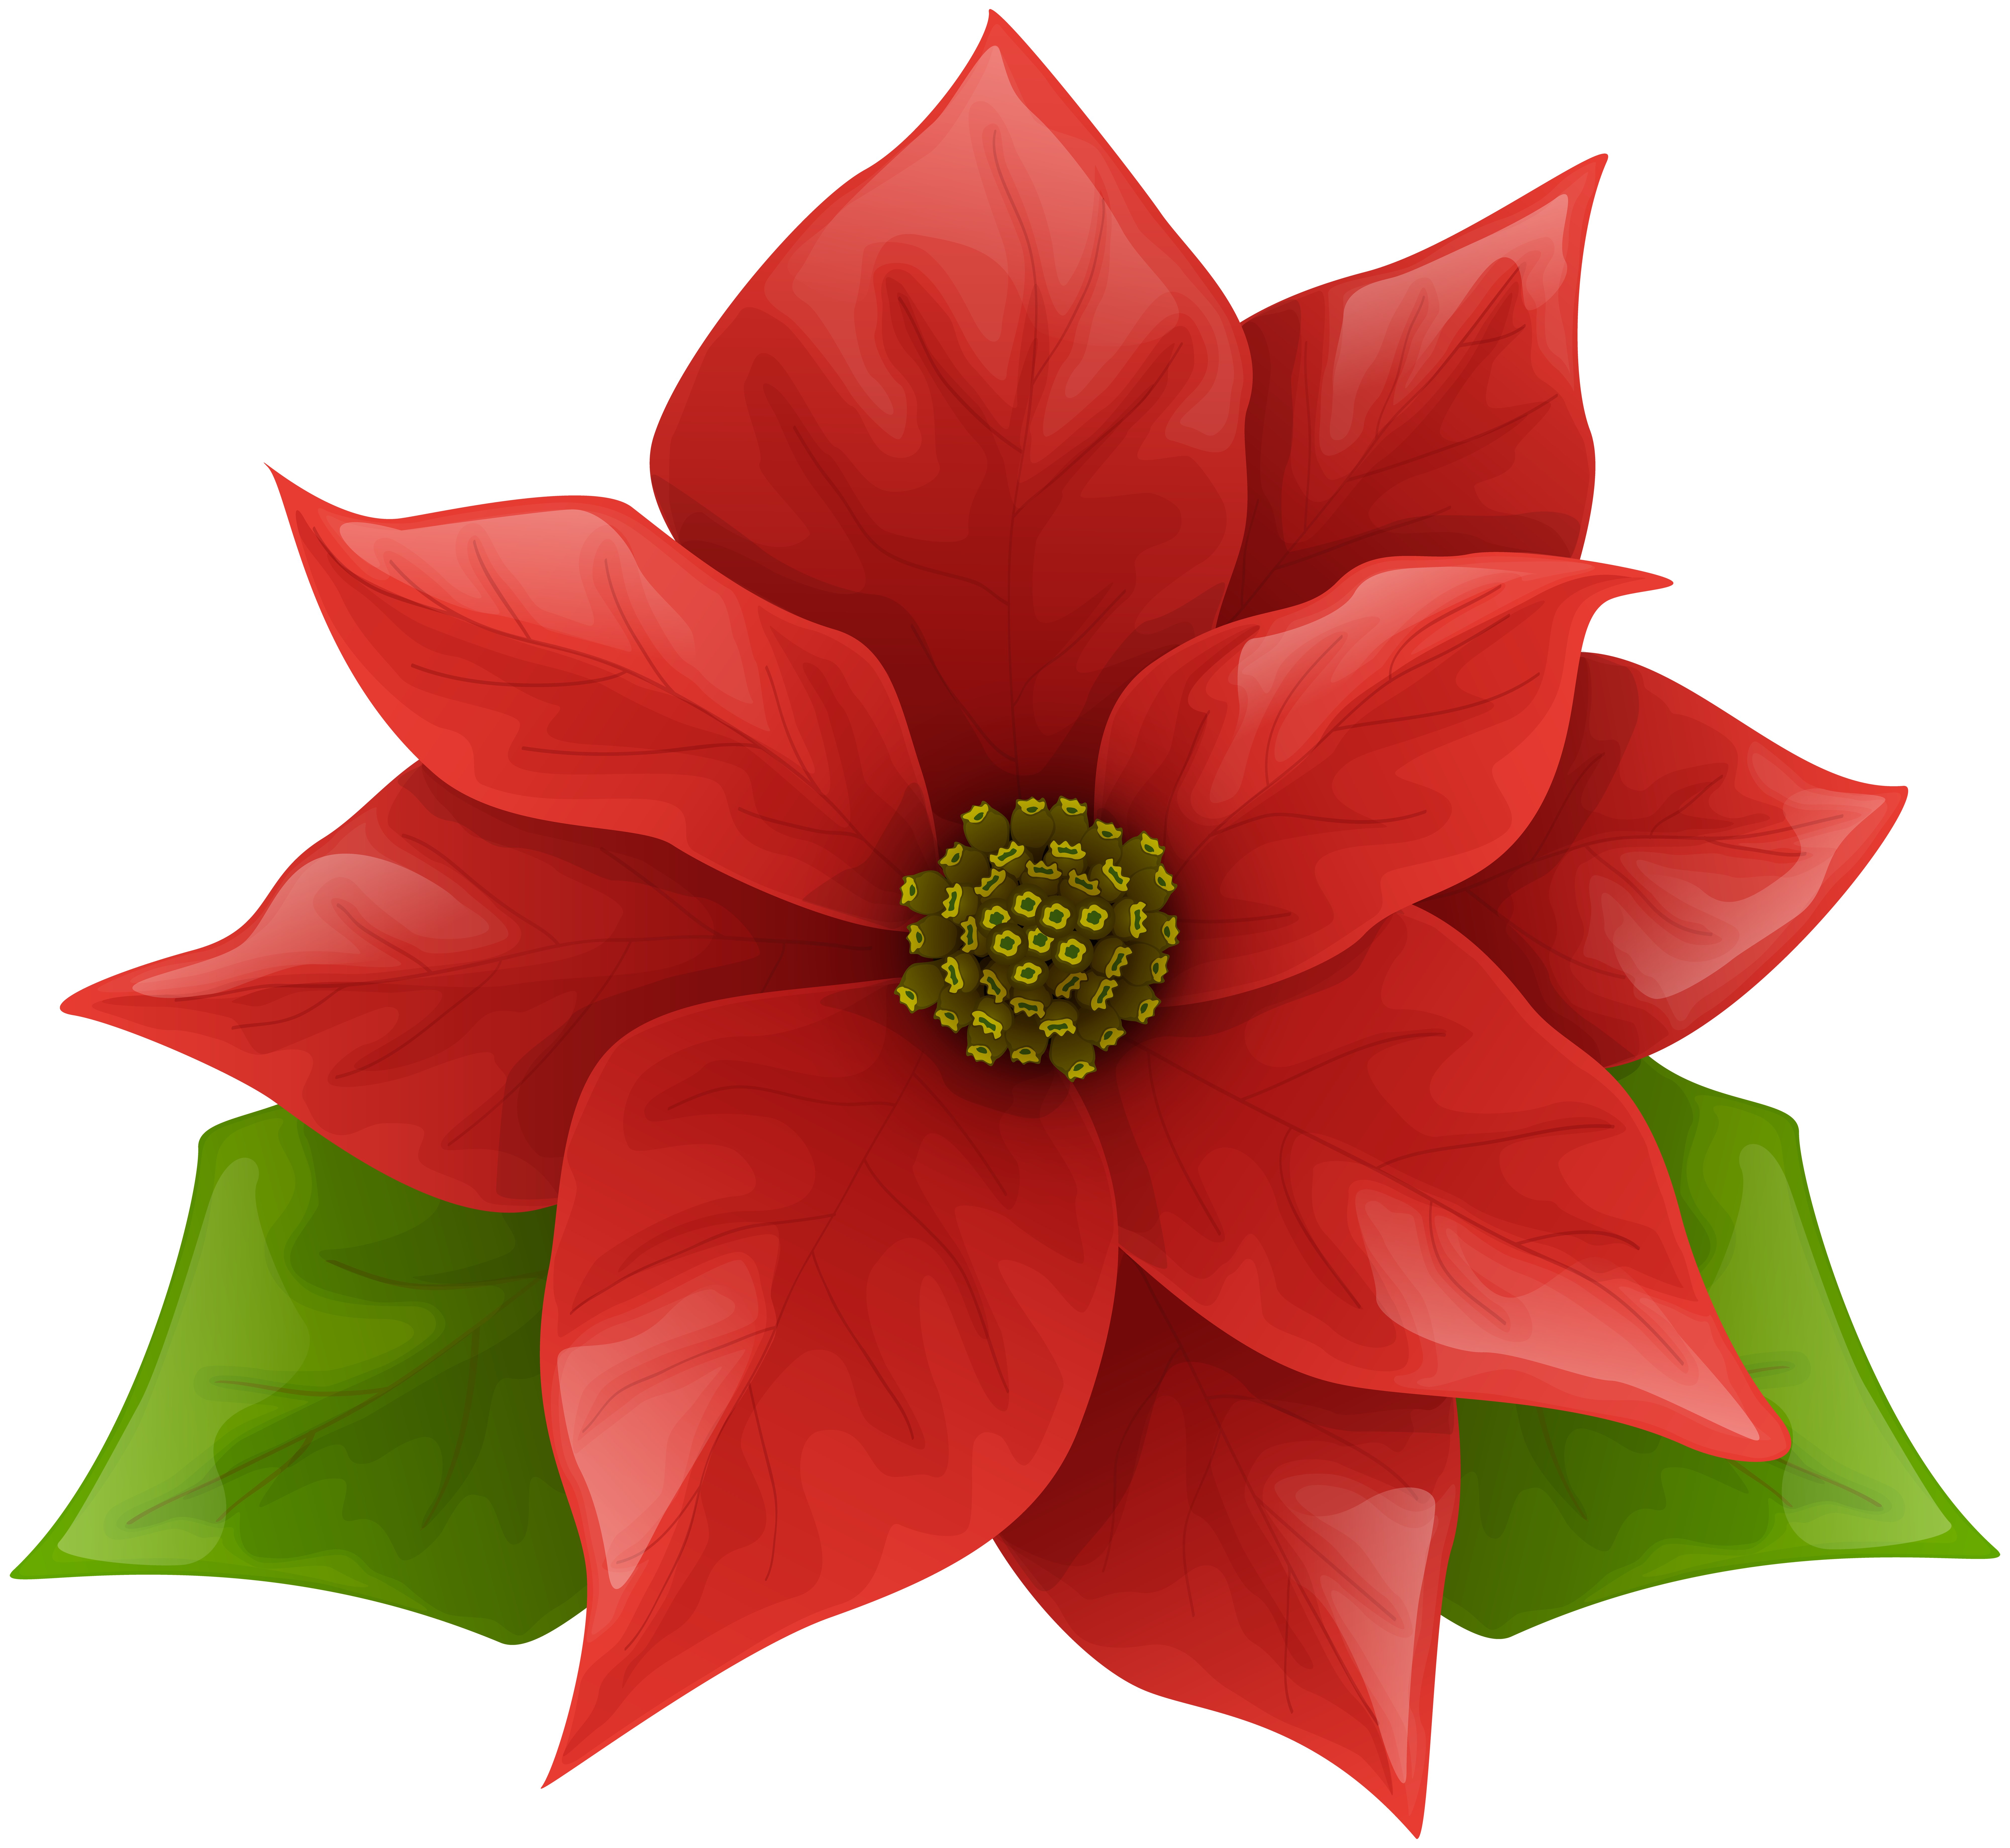 Poinsettias clipart with transparent background svg stock Christmas Poinsettia PNG Clip Art Image | Gallery ... svg stock